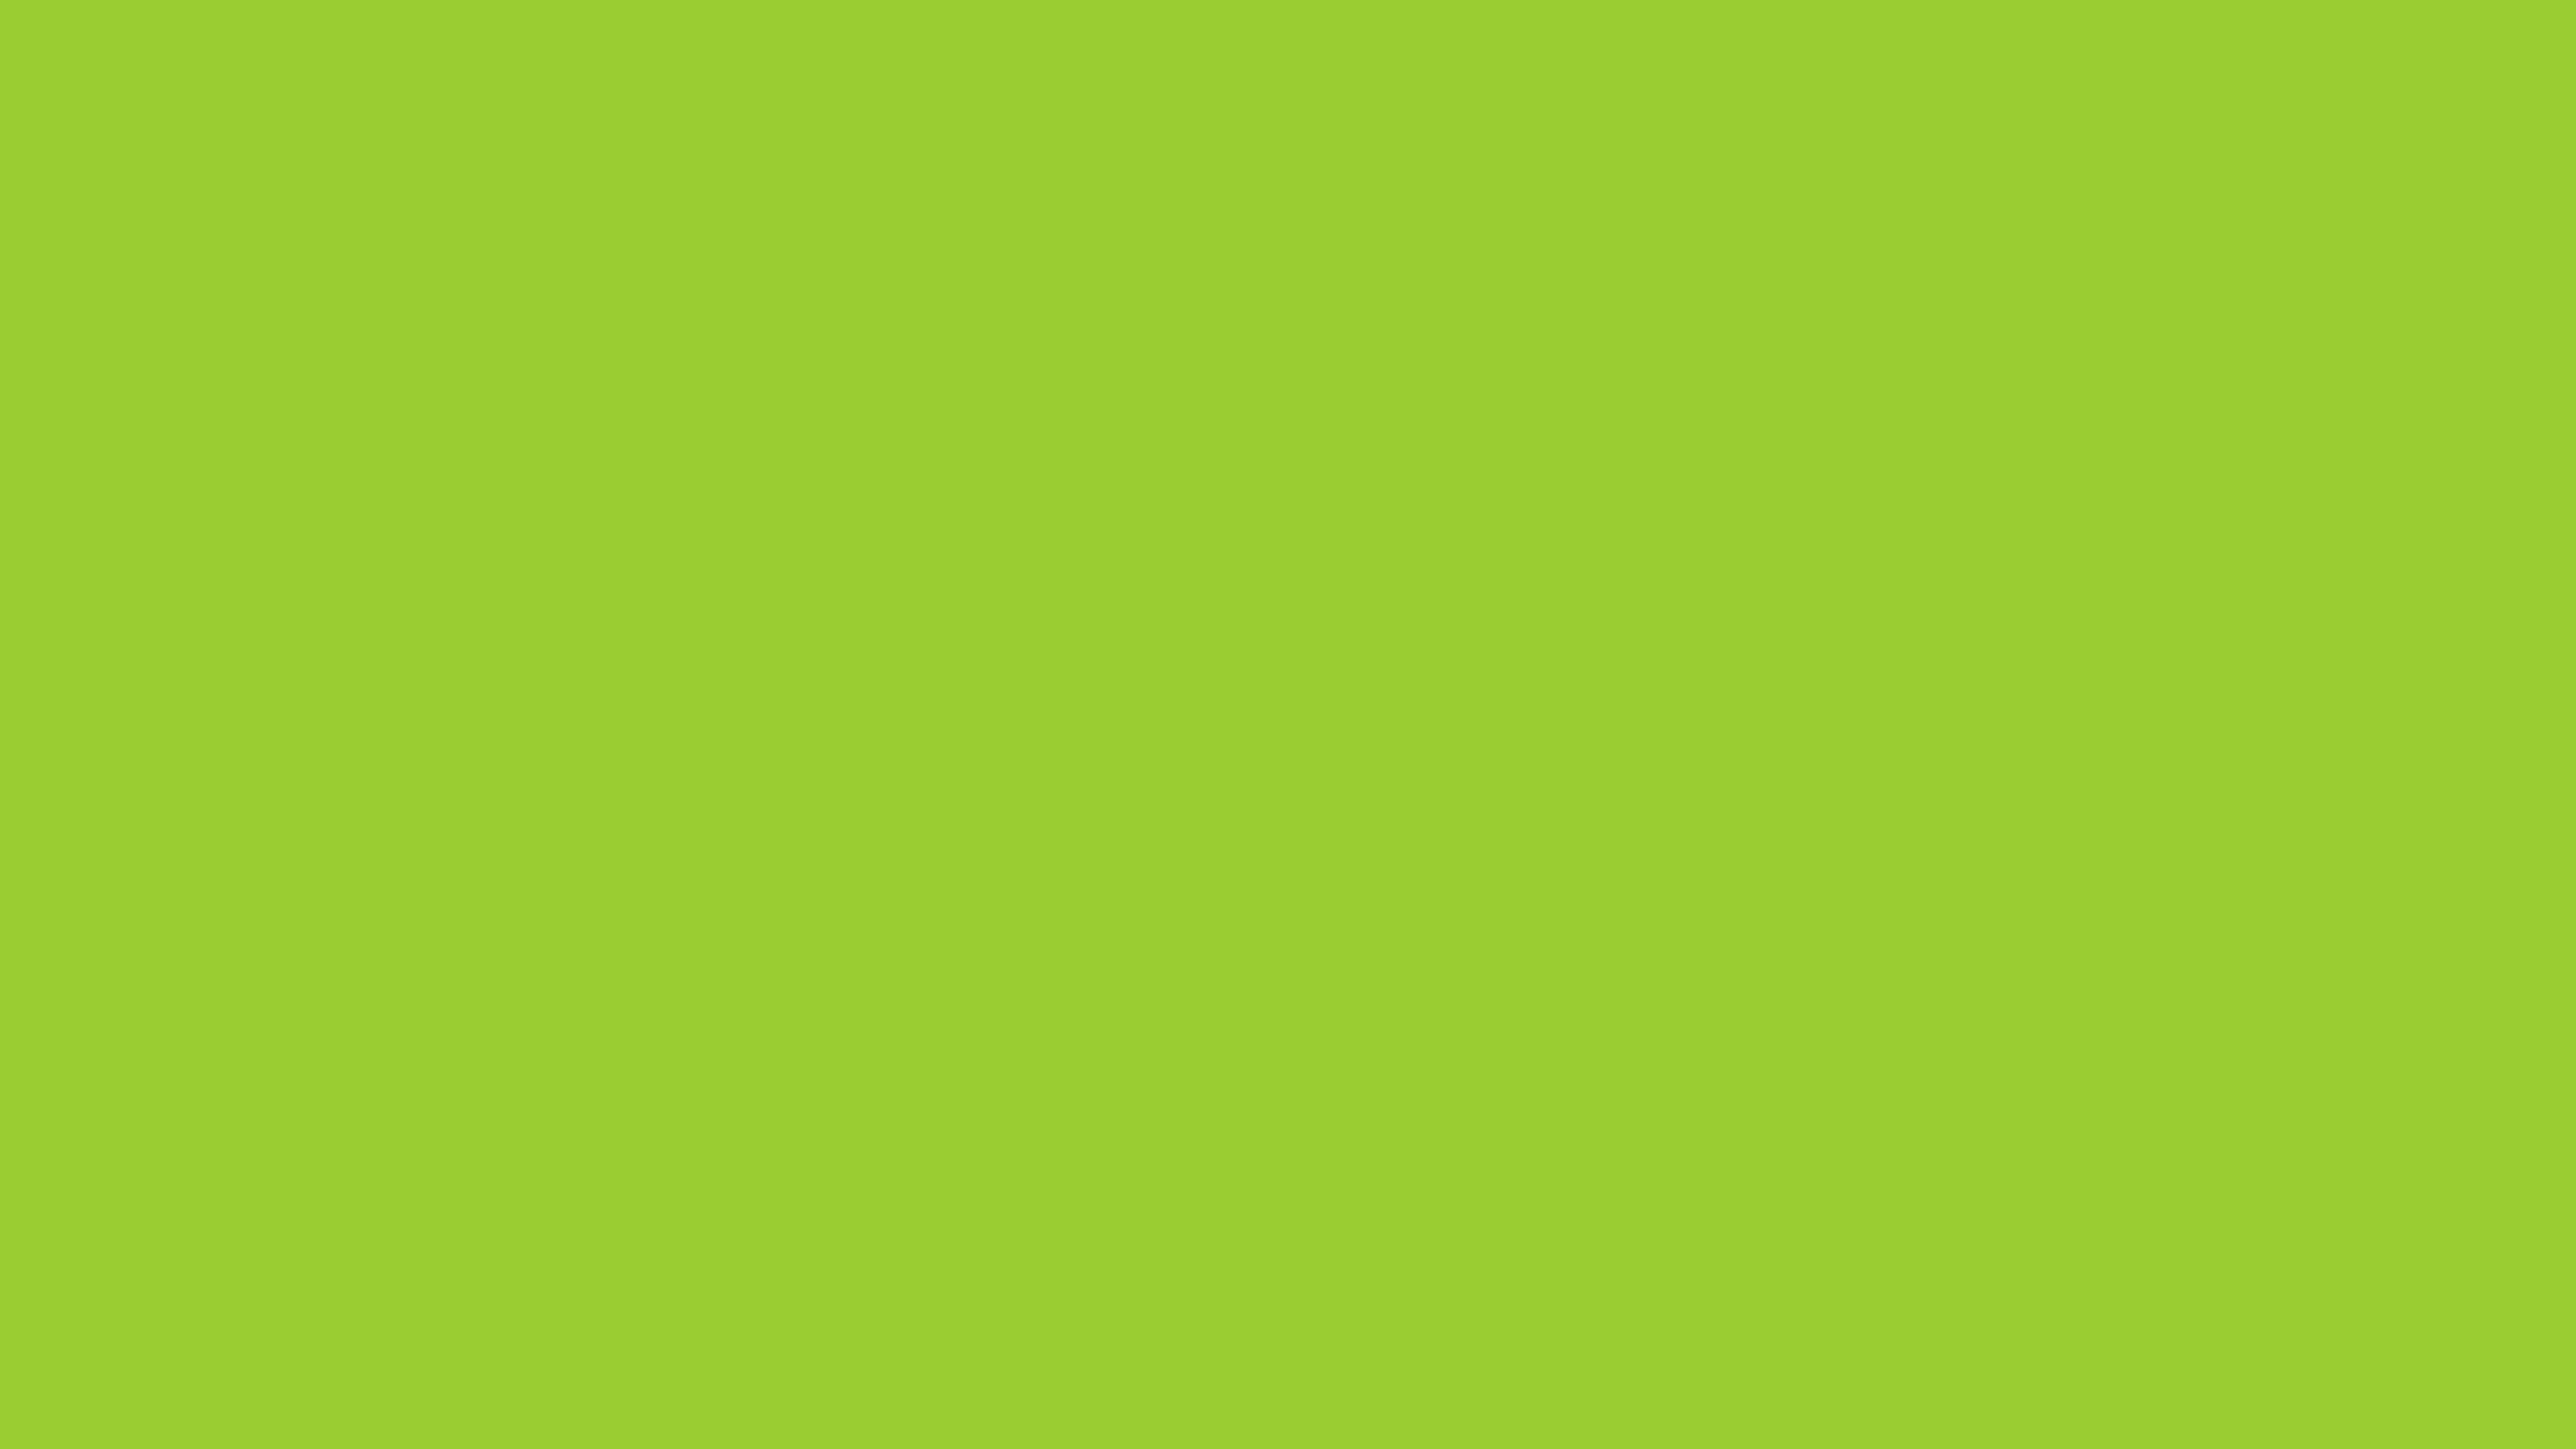 3840x2160 Yellow-green Solid Color Background